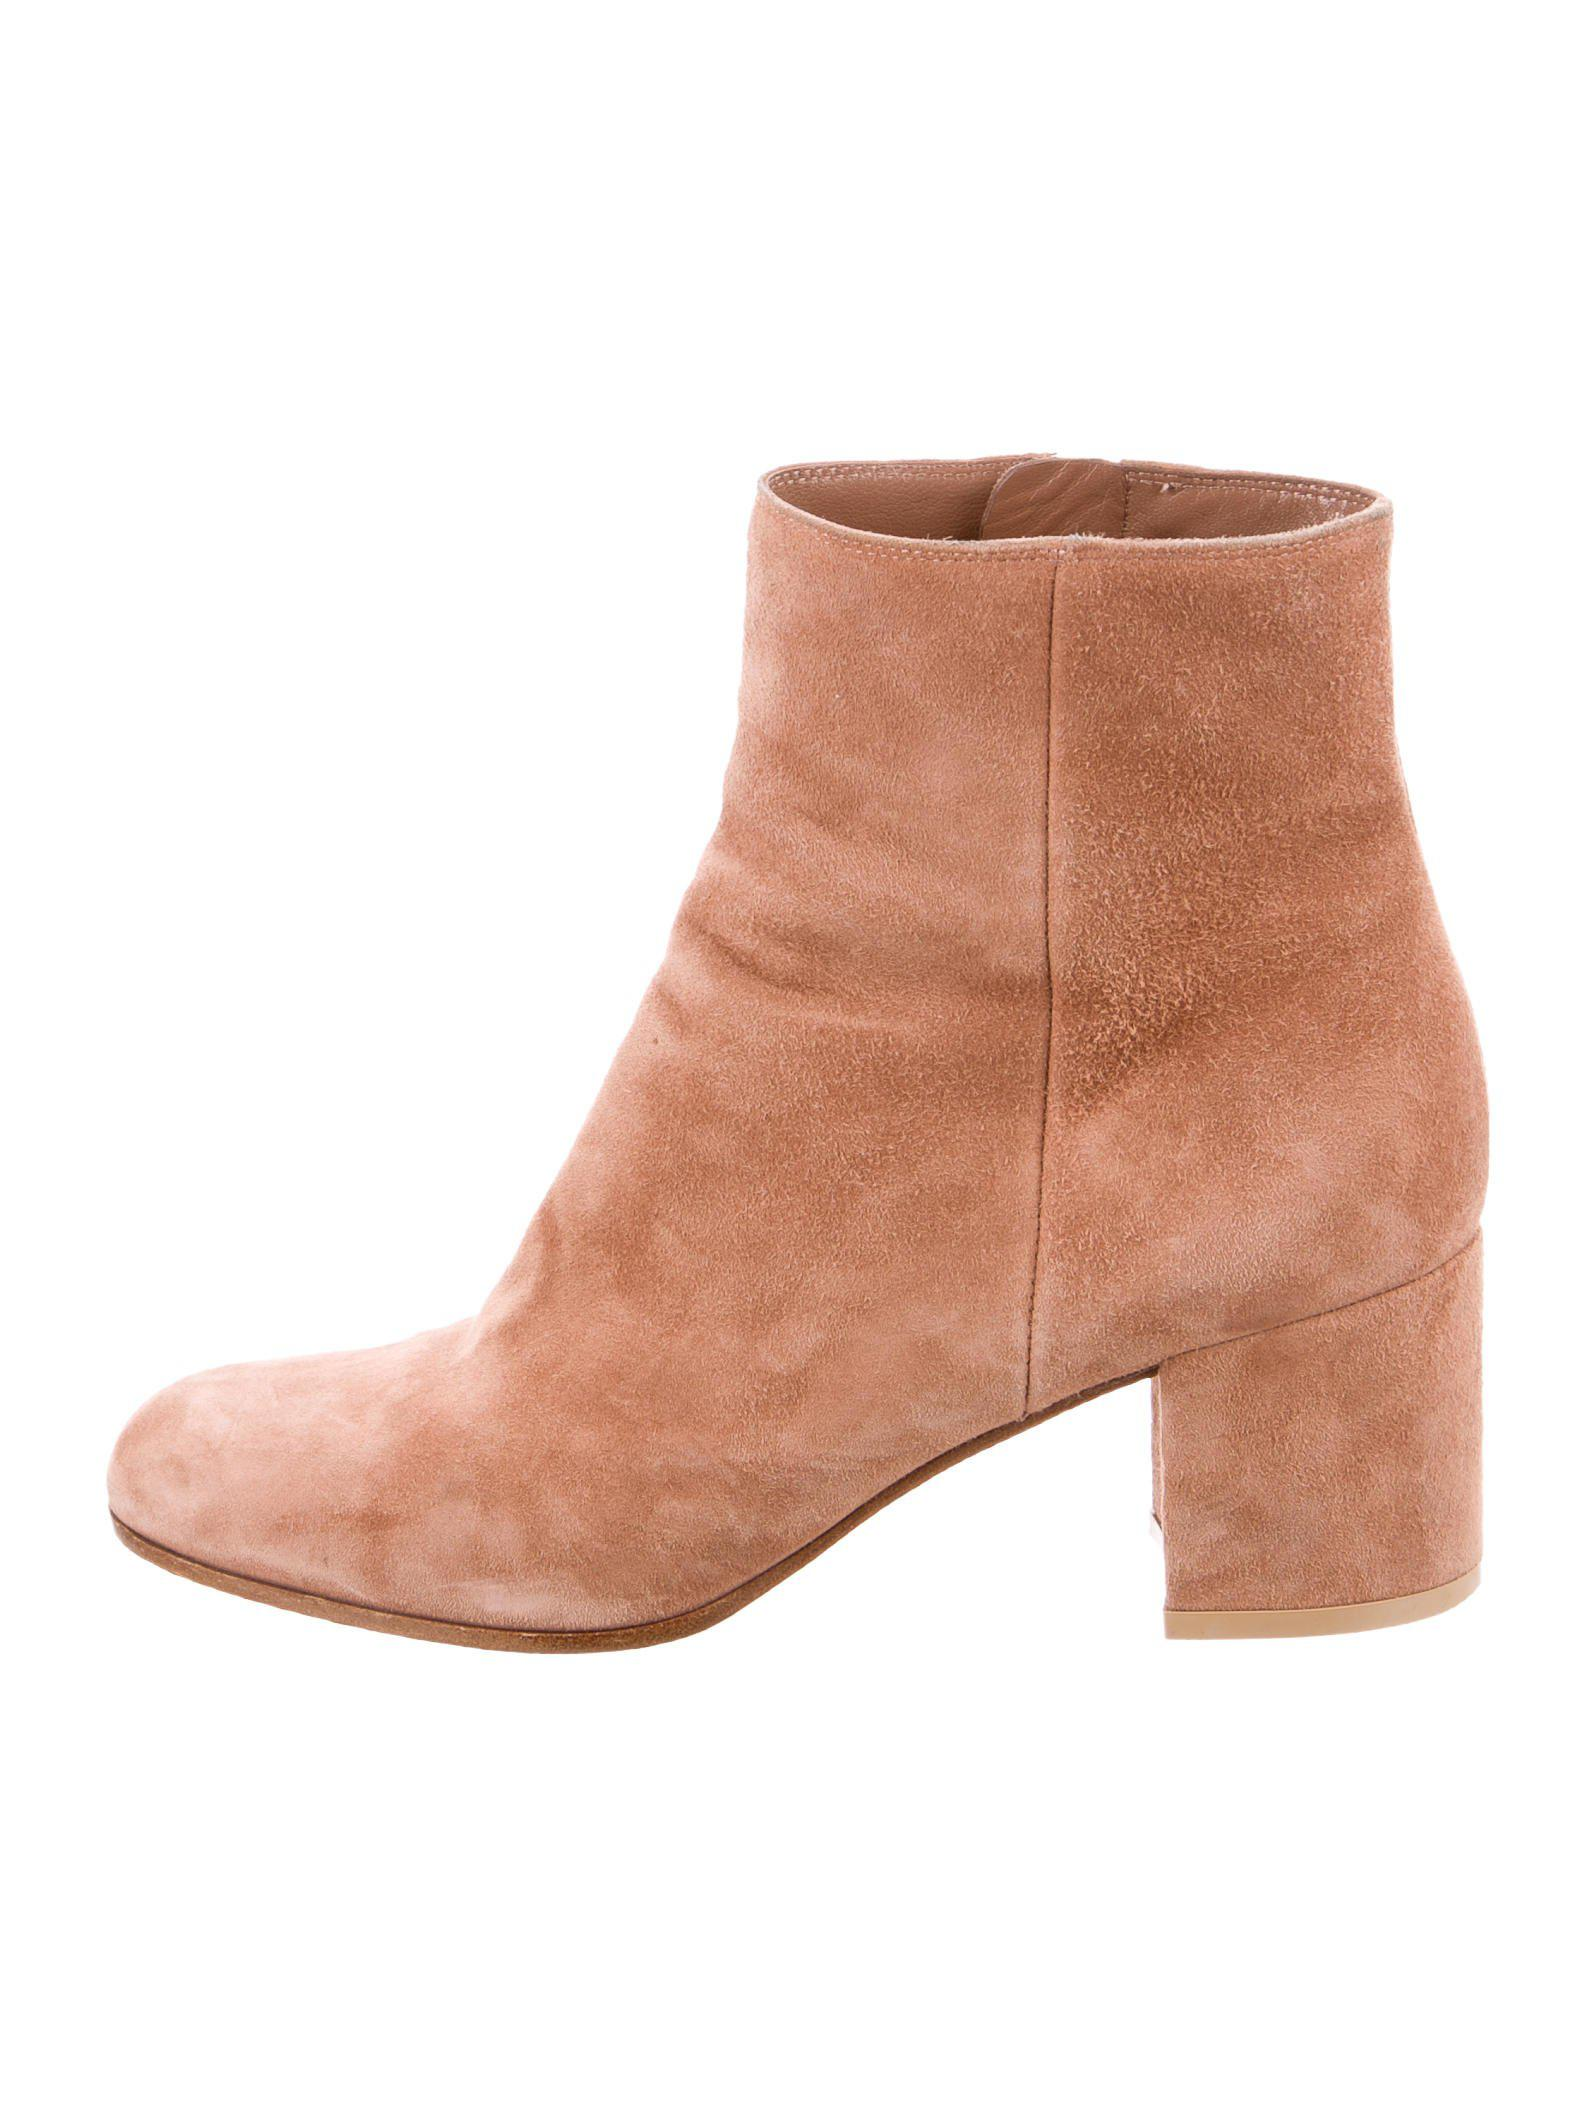 Gianvito Rossi Suede Round-Toe Ankle Boots free shipping best prices cheap sale Inexpensive ER2JRY